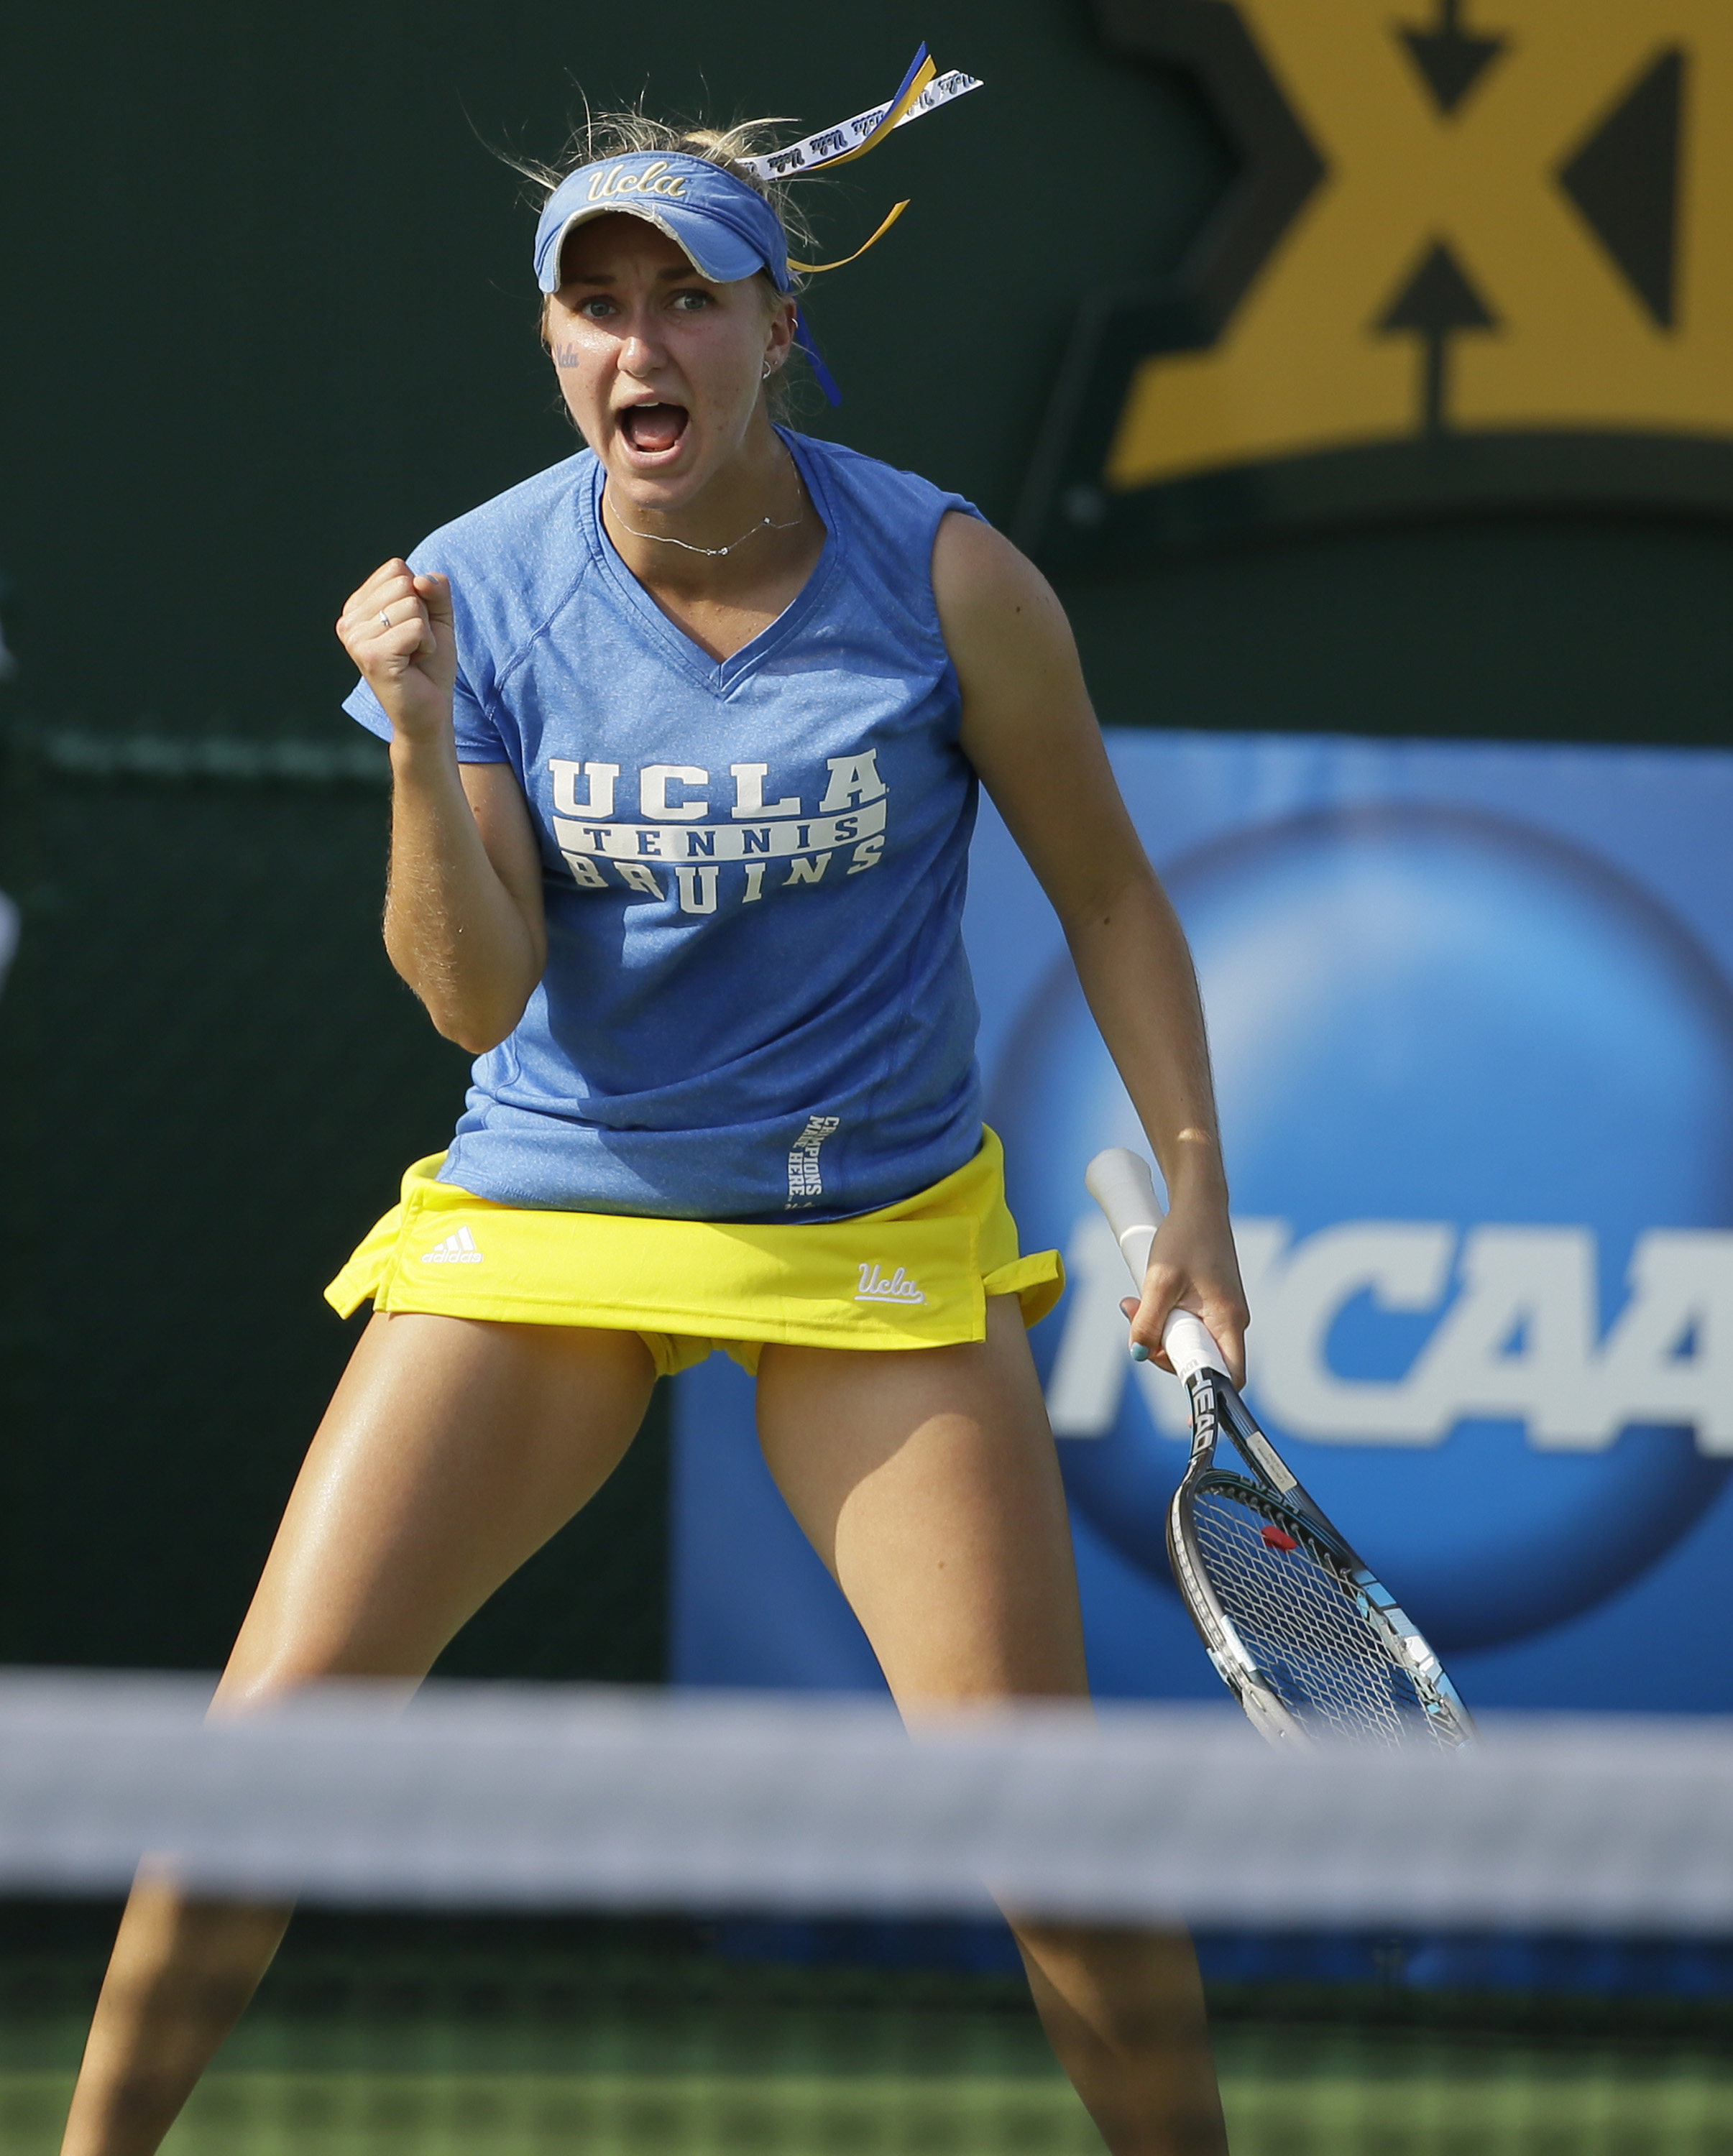 UCLA's Catherine Harrison reacts to a play during the NCAA's women's team tennis championships against Vanderbilt, Tuesday, May 19, 2015, Waco, Texas. (AP Photo/LM Otero)